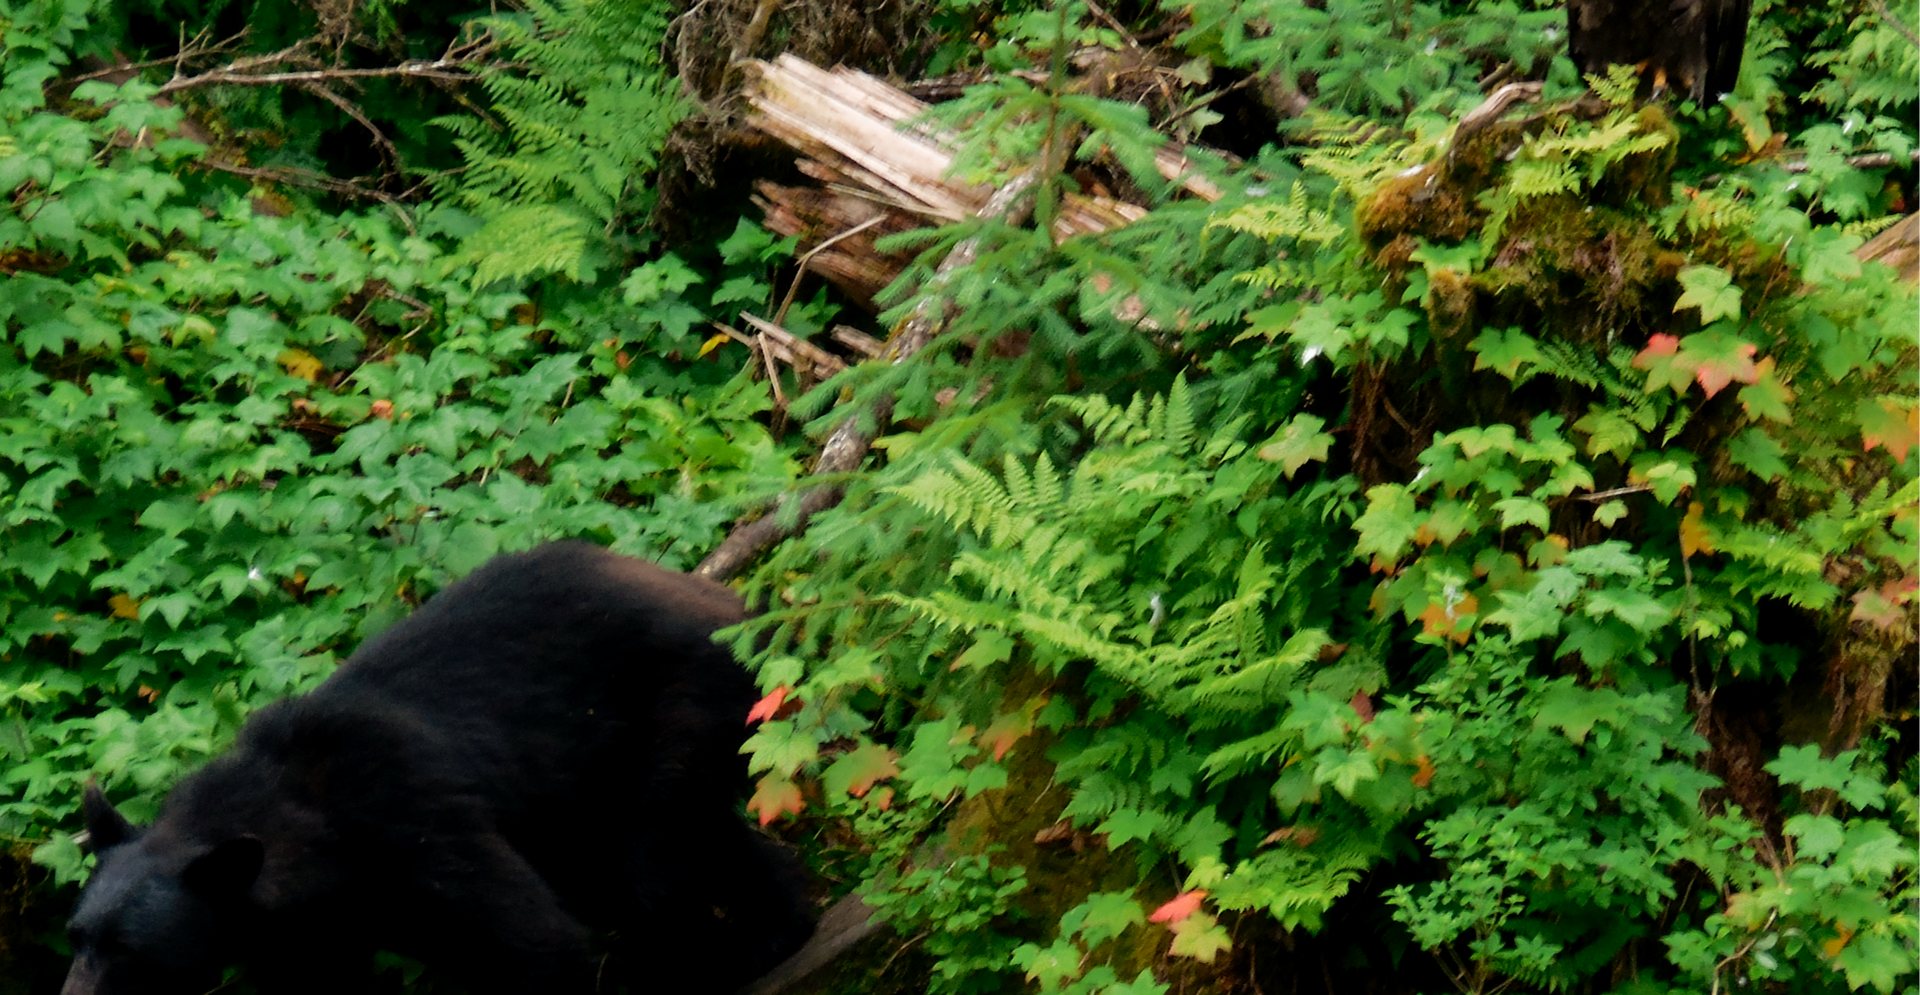 Black Bear interrupting the Bald Eagle in his medidation :). Anan Creek, SE Alaska. Photo by Ido Gayer.